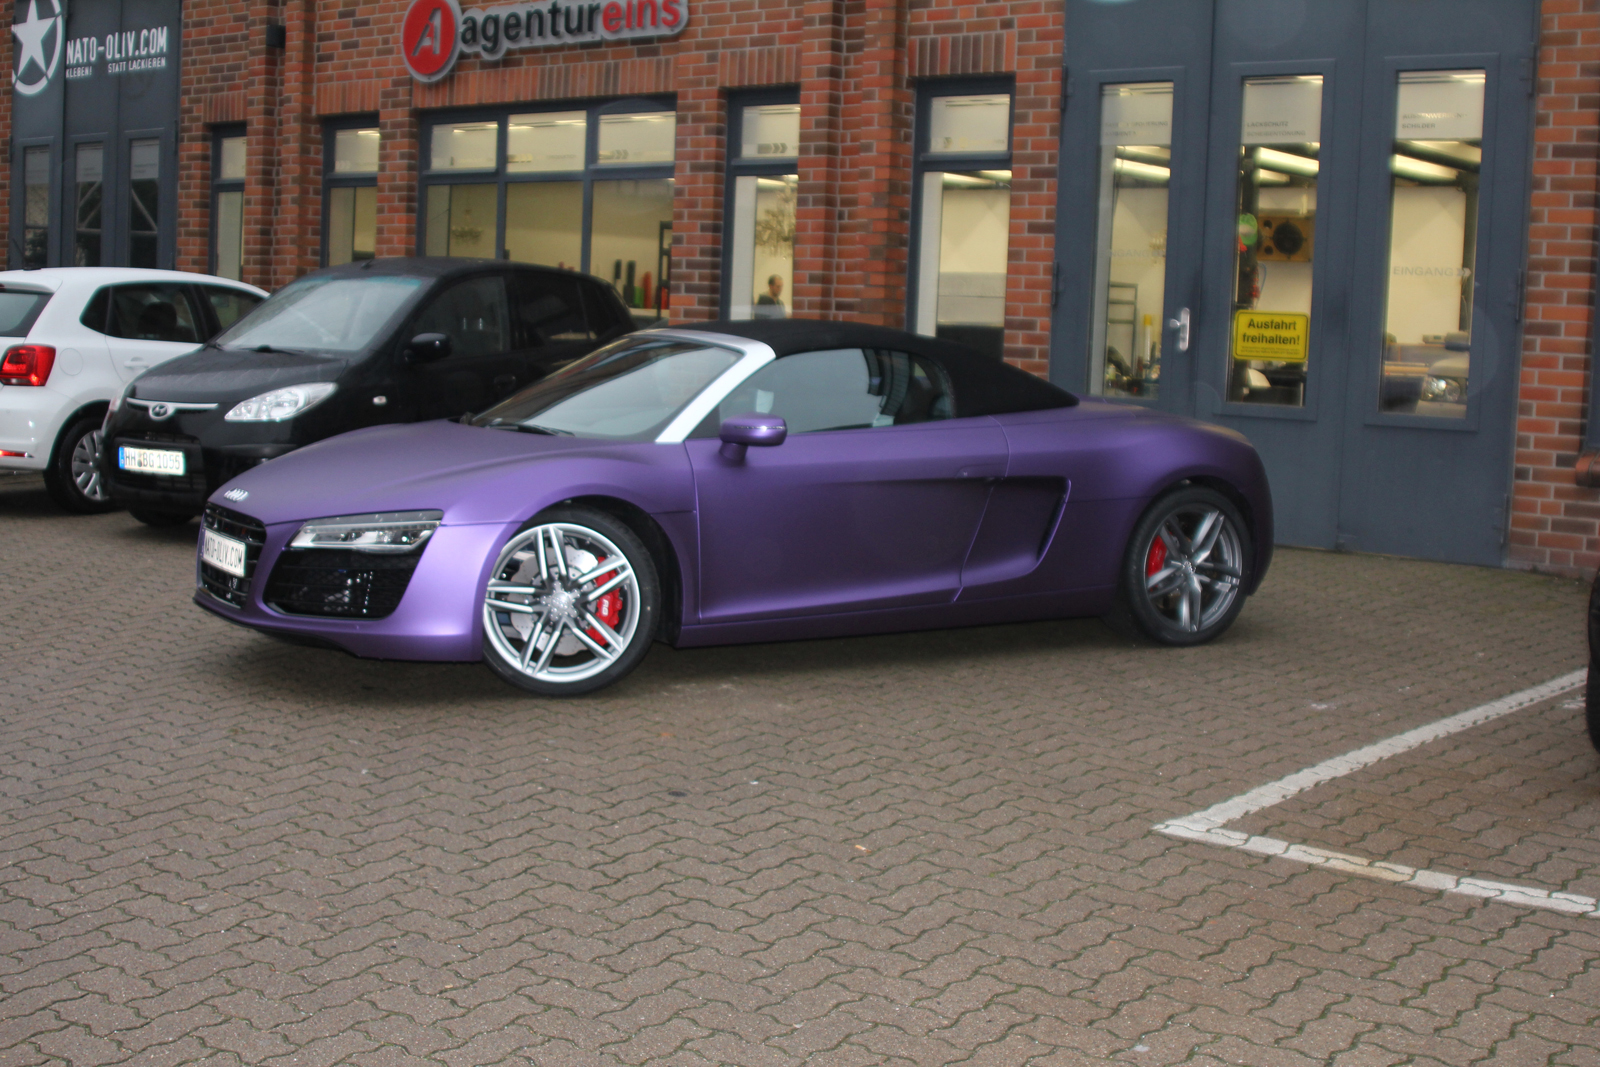 AUDI_R8_PURPLE_MATT_METALLIC_CAR-WRAPPING_03